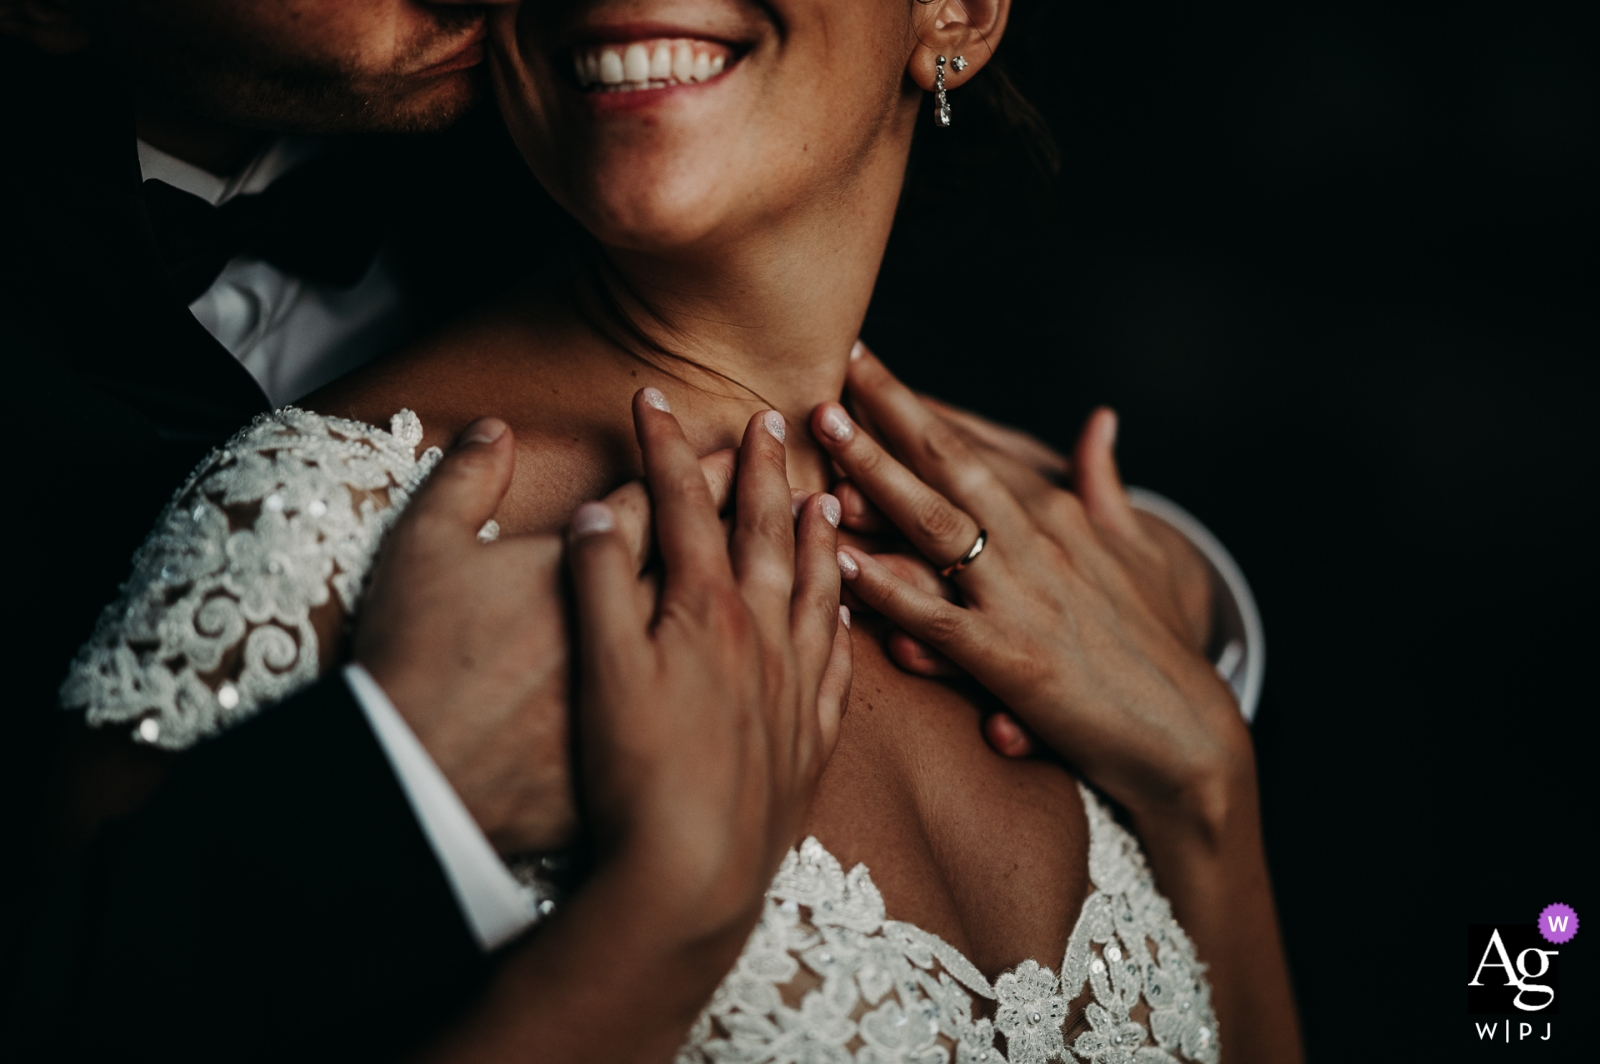 Apulia bride and groom portrait - tender crossing of hands in a intimate moment